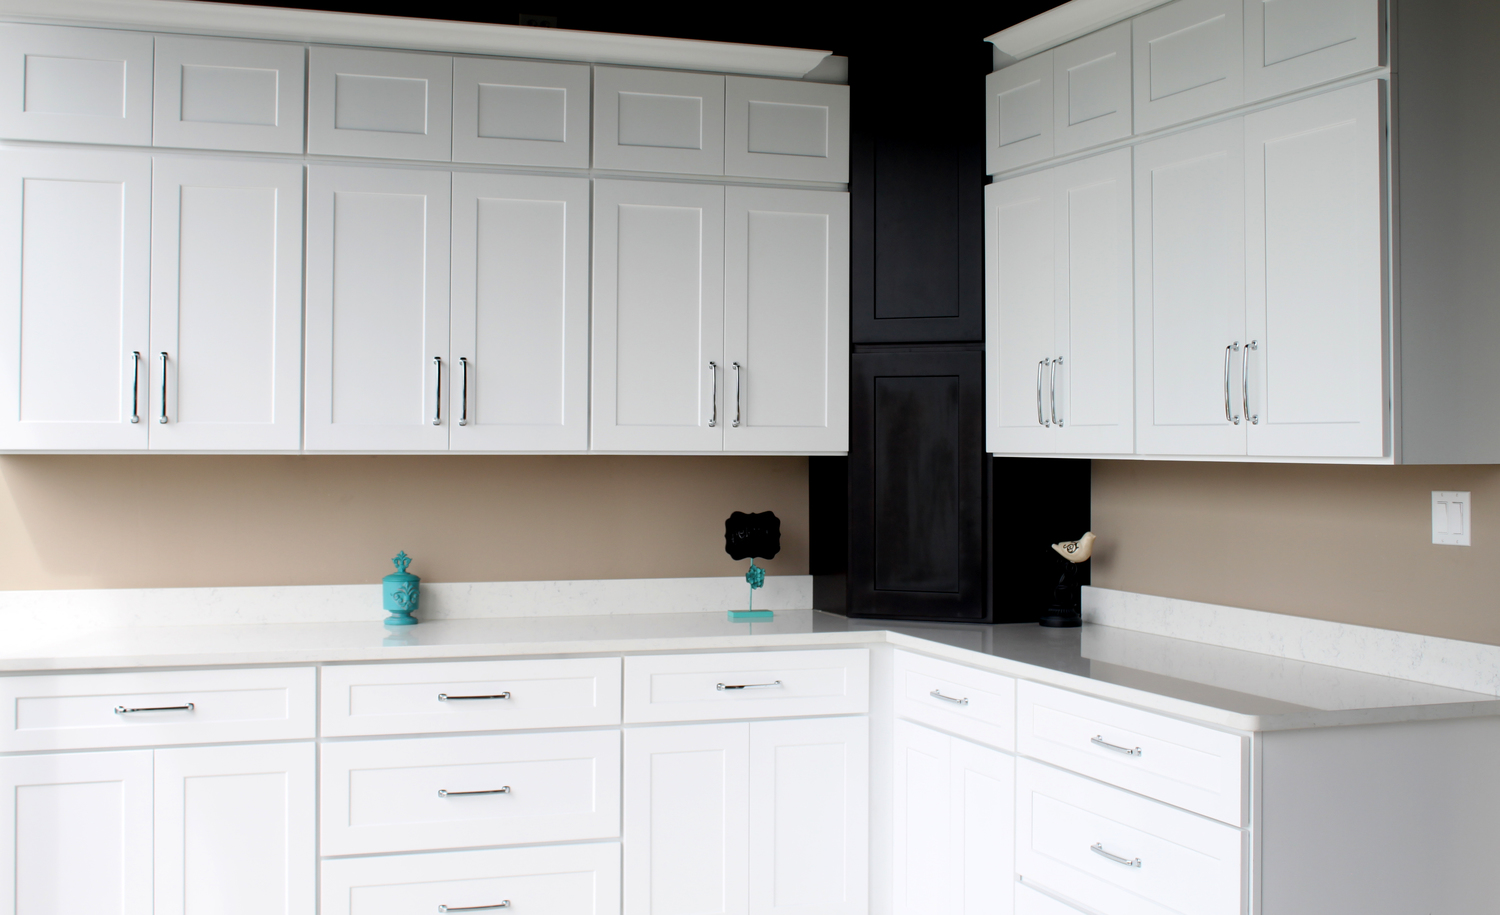 Cabinets West Chicago  West Chicago Kitchen Cabinets, Sinks and Countertops